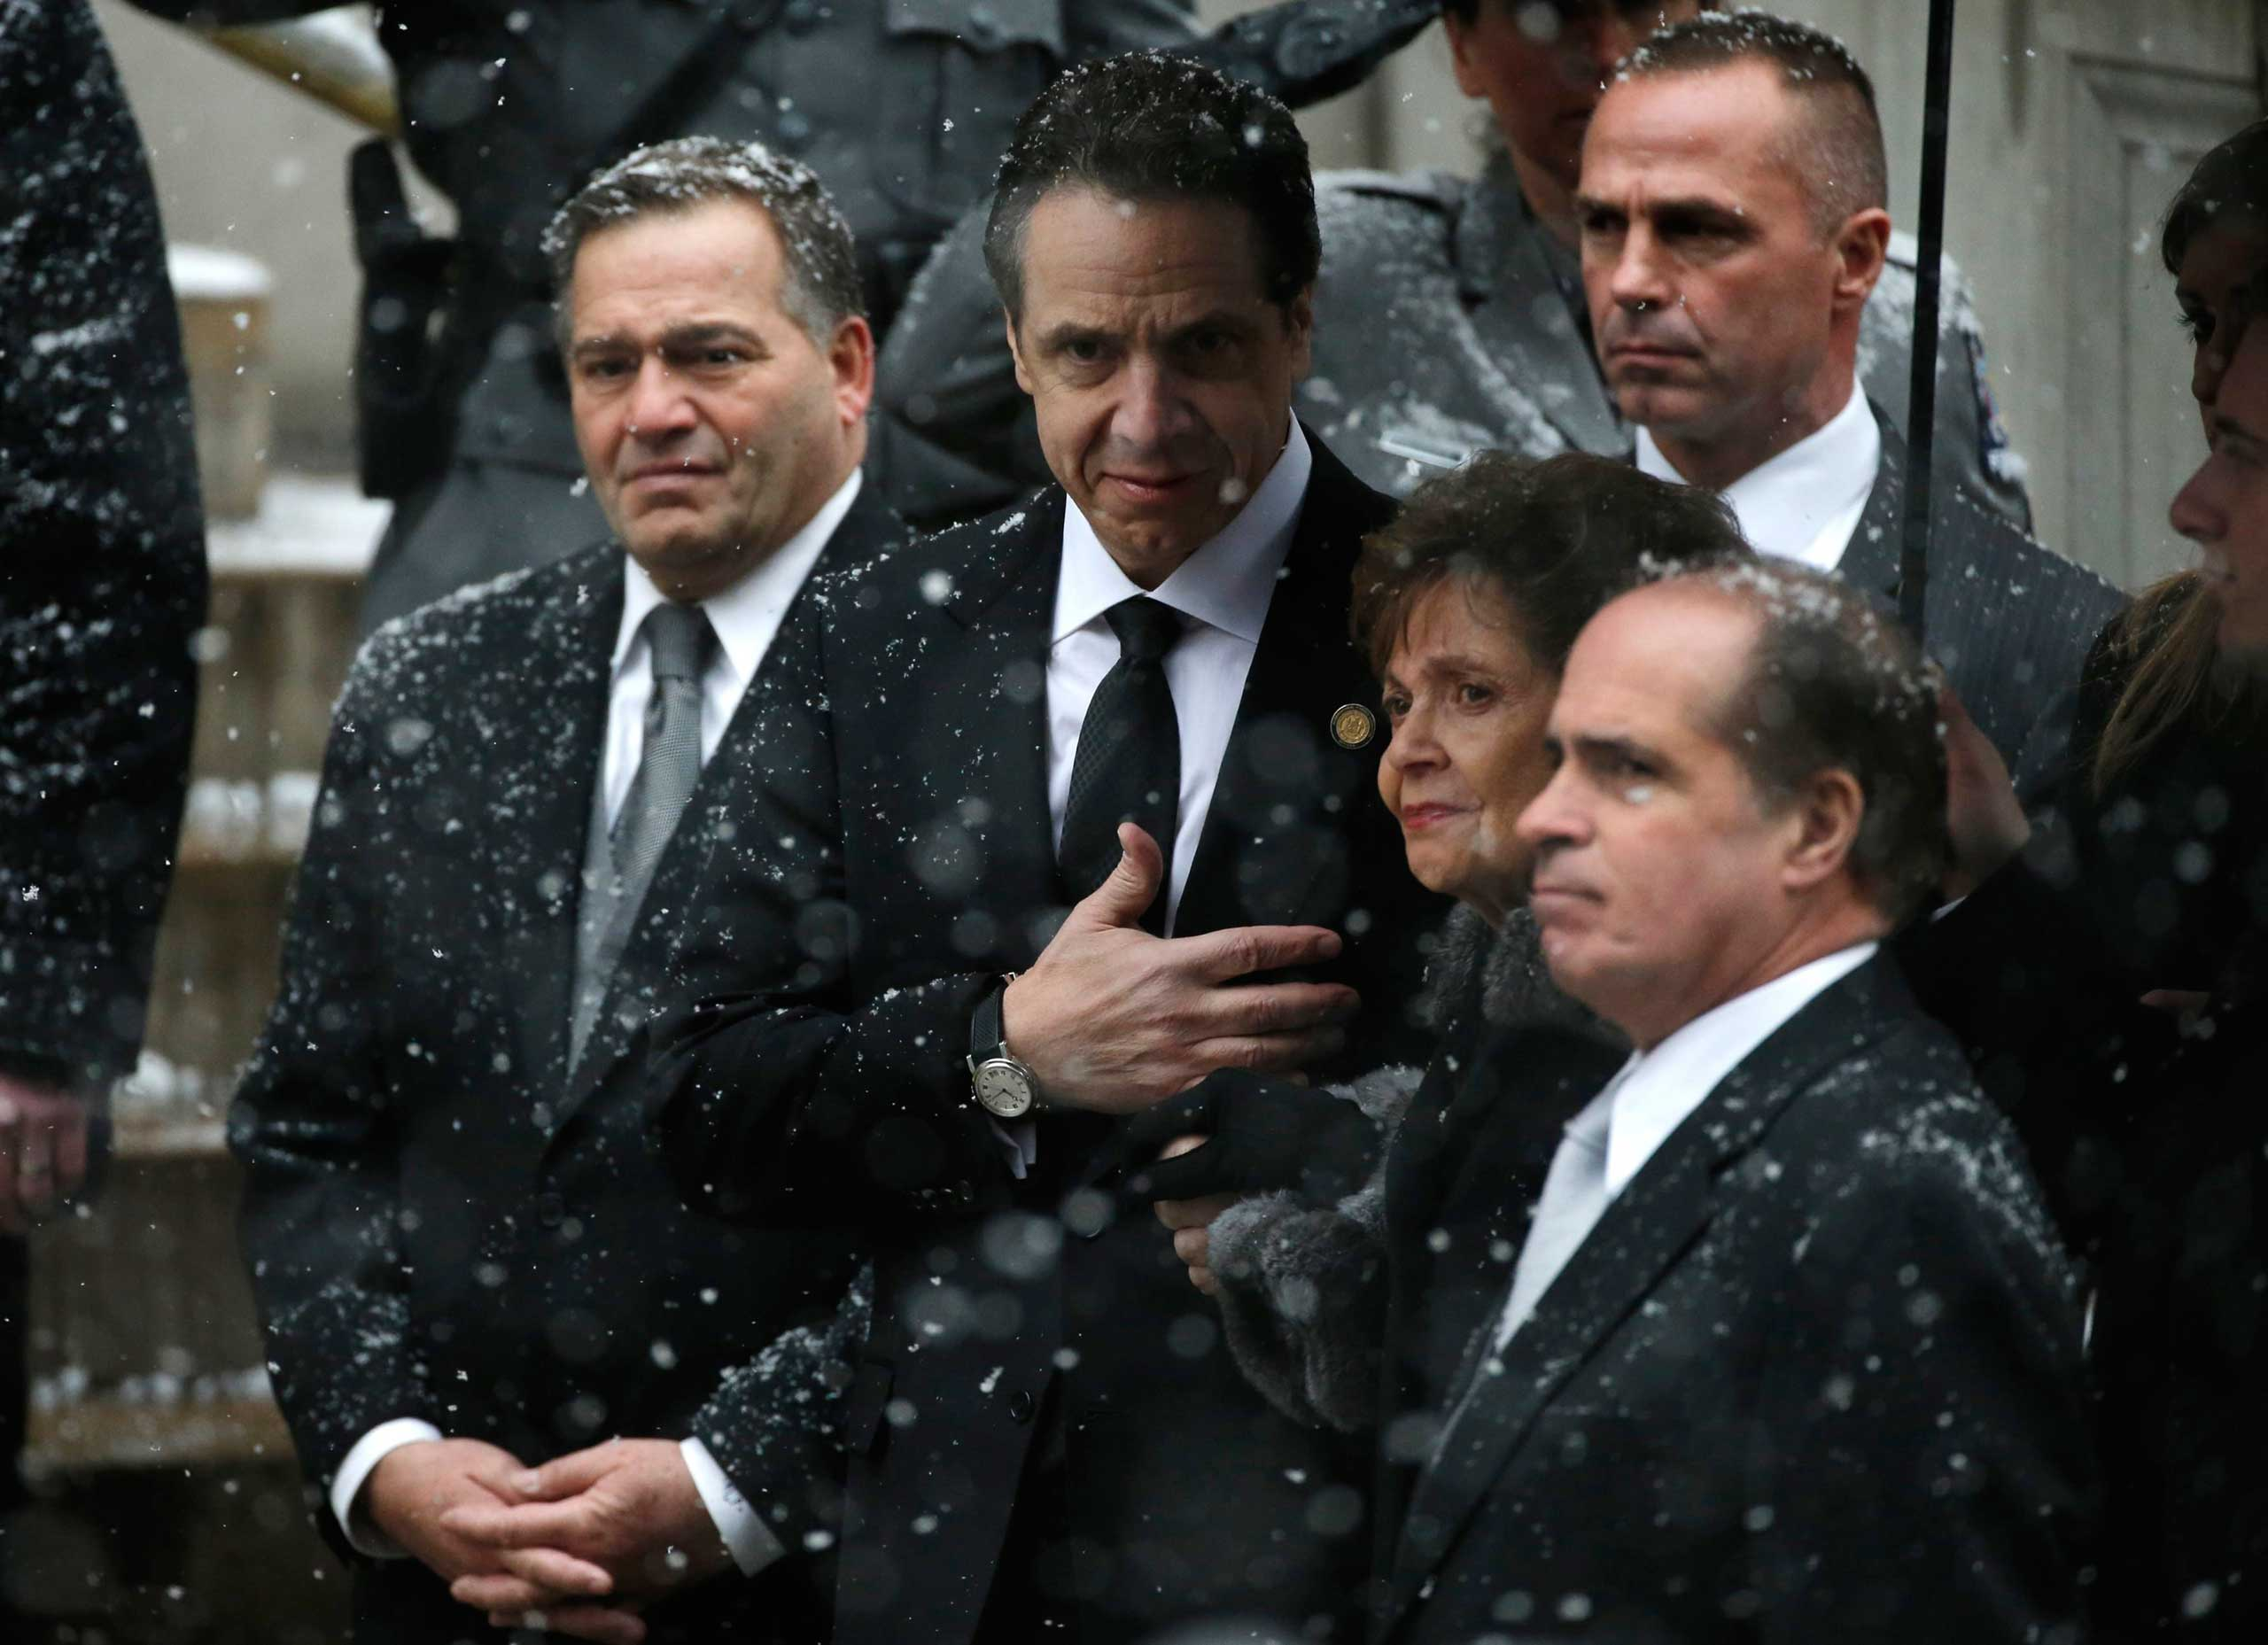 New York Governor Andrew Cuomo stands with his mother Matilda and other members of his family as he watches the casket of his late father former New York Governor Mario Cuomo being carried into St. Ignatius Loyola Church for funeral service in New York on Jan. 6, 2015.